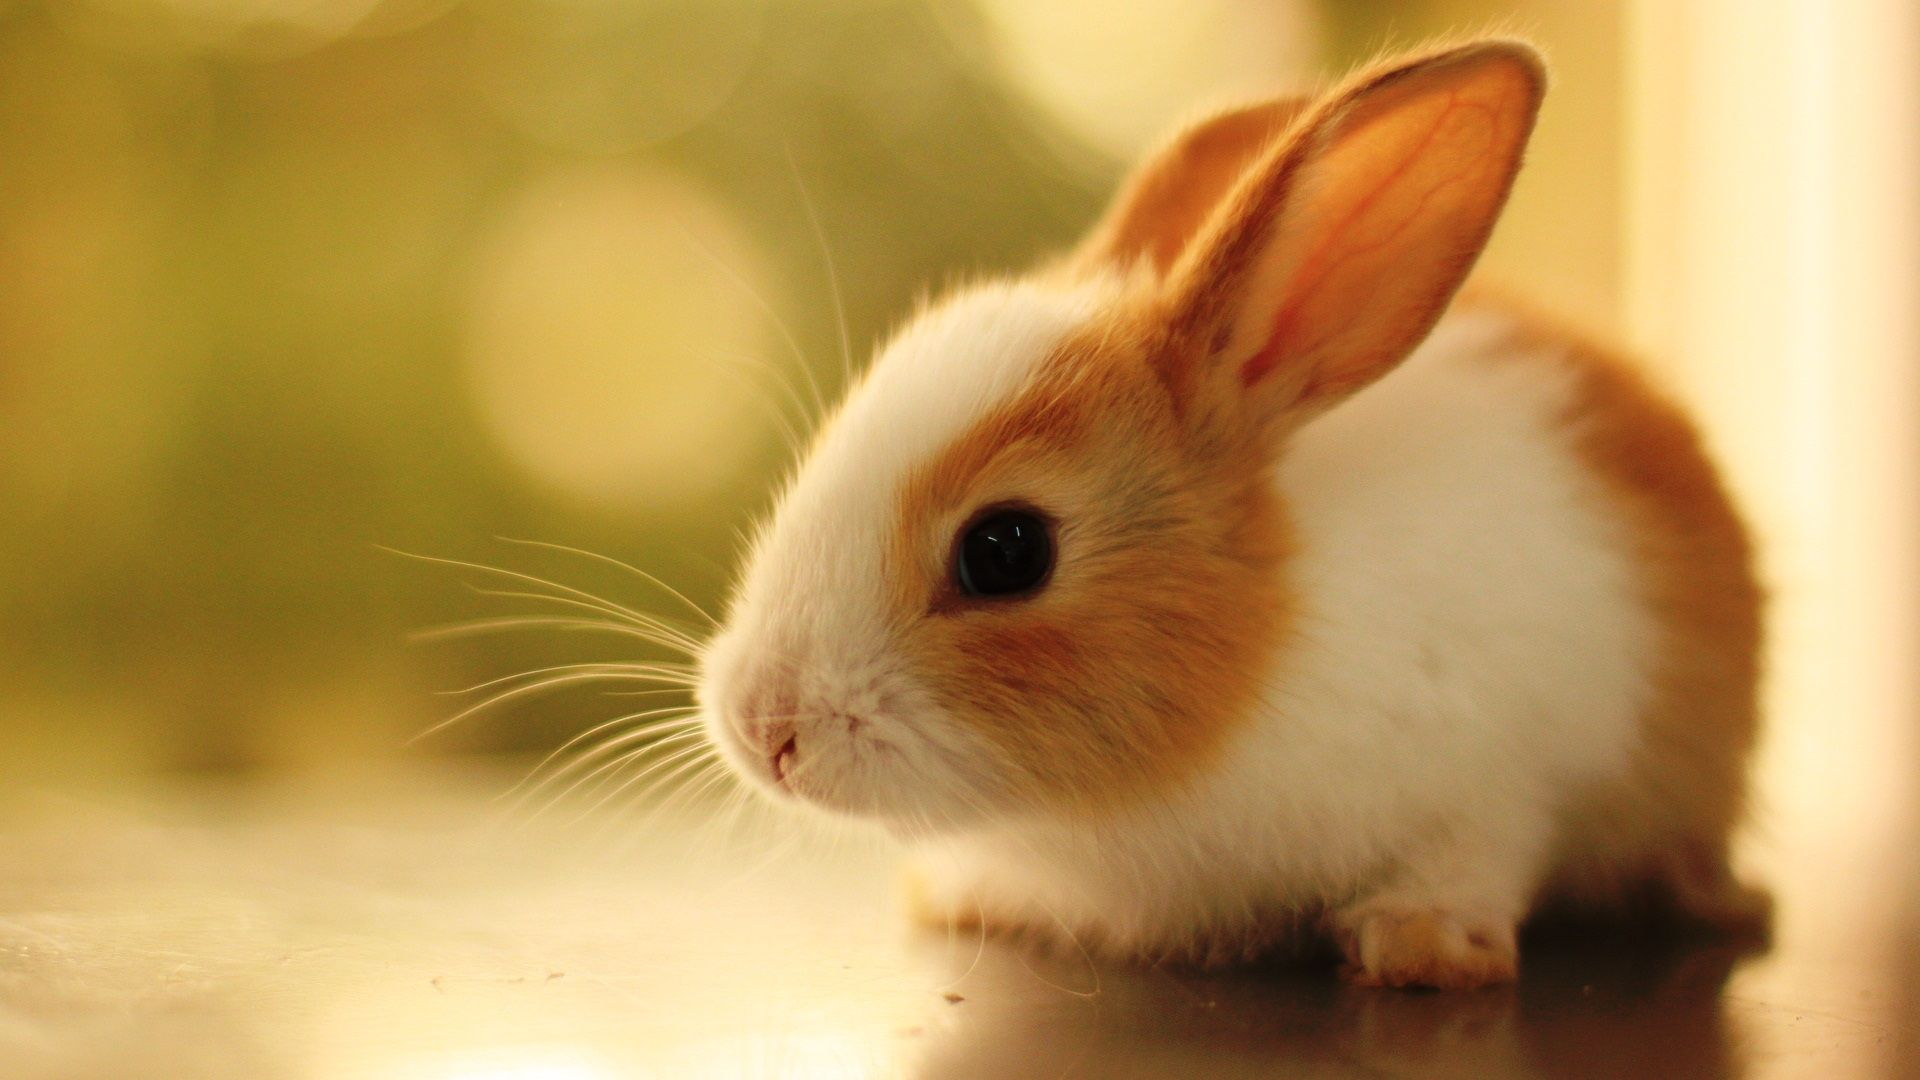 Cute Bunnies Pictures